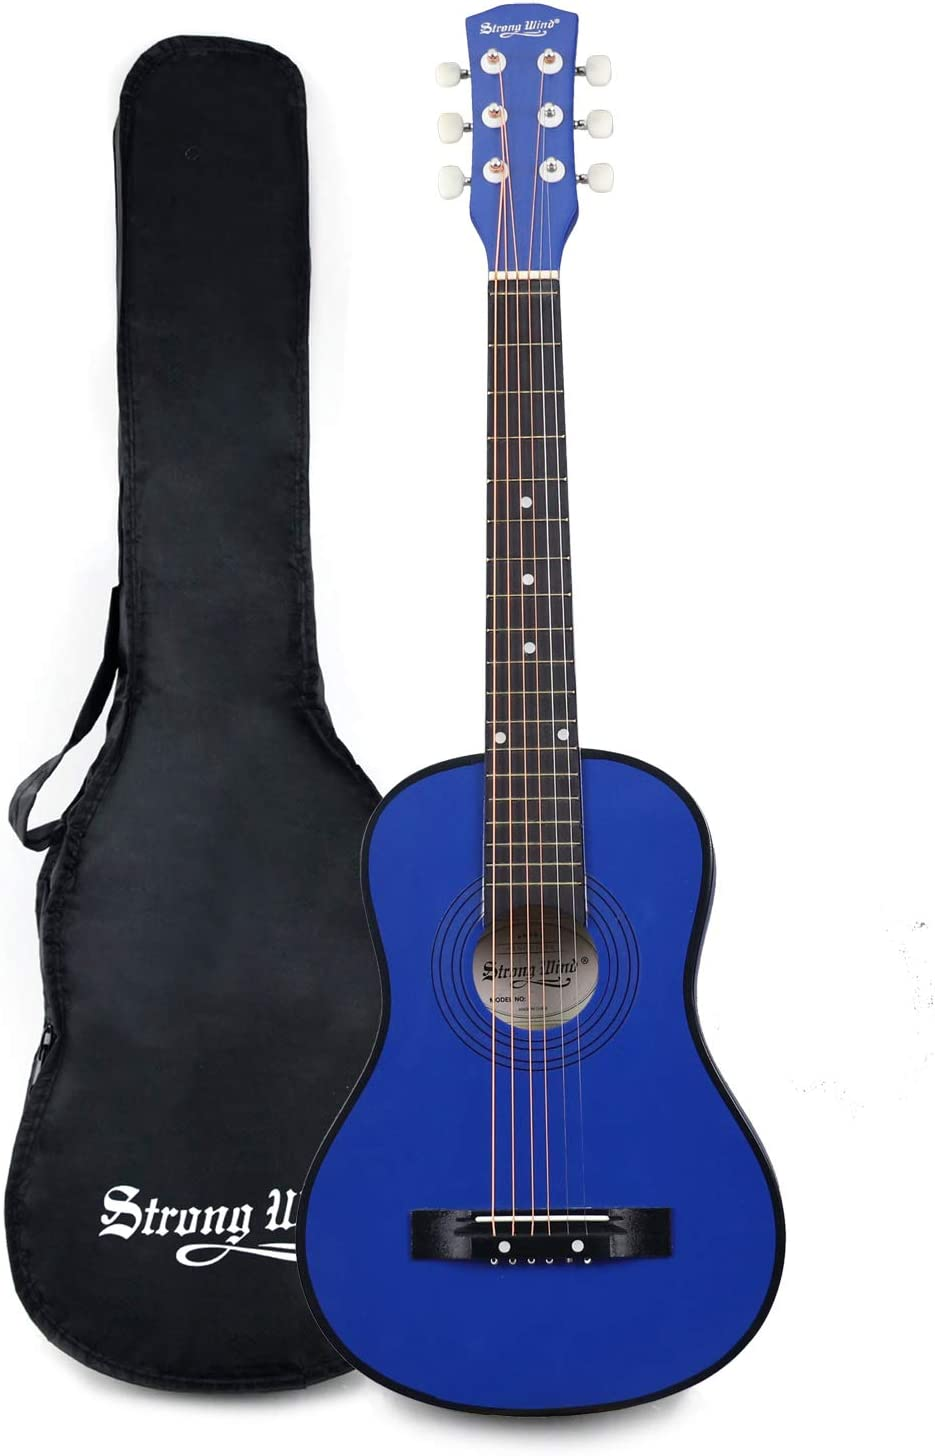 30 Inch Acoustic Guitar,1/2 Size Mini Guitars Instrument Beginner Kit for Kids/Beginners/Child with Gig Bag Blue 61J7ouTXI1L